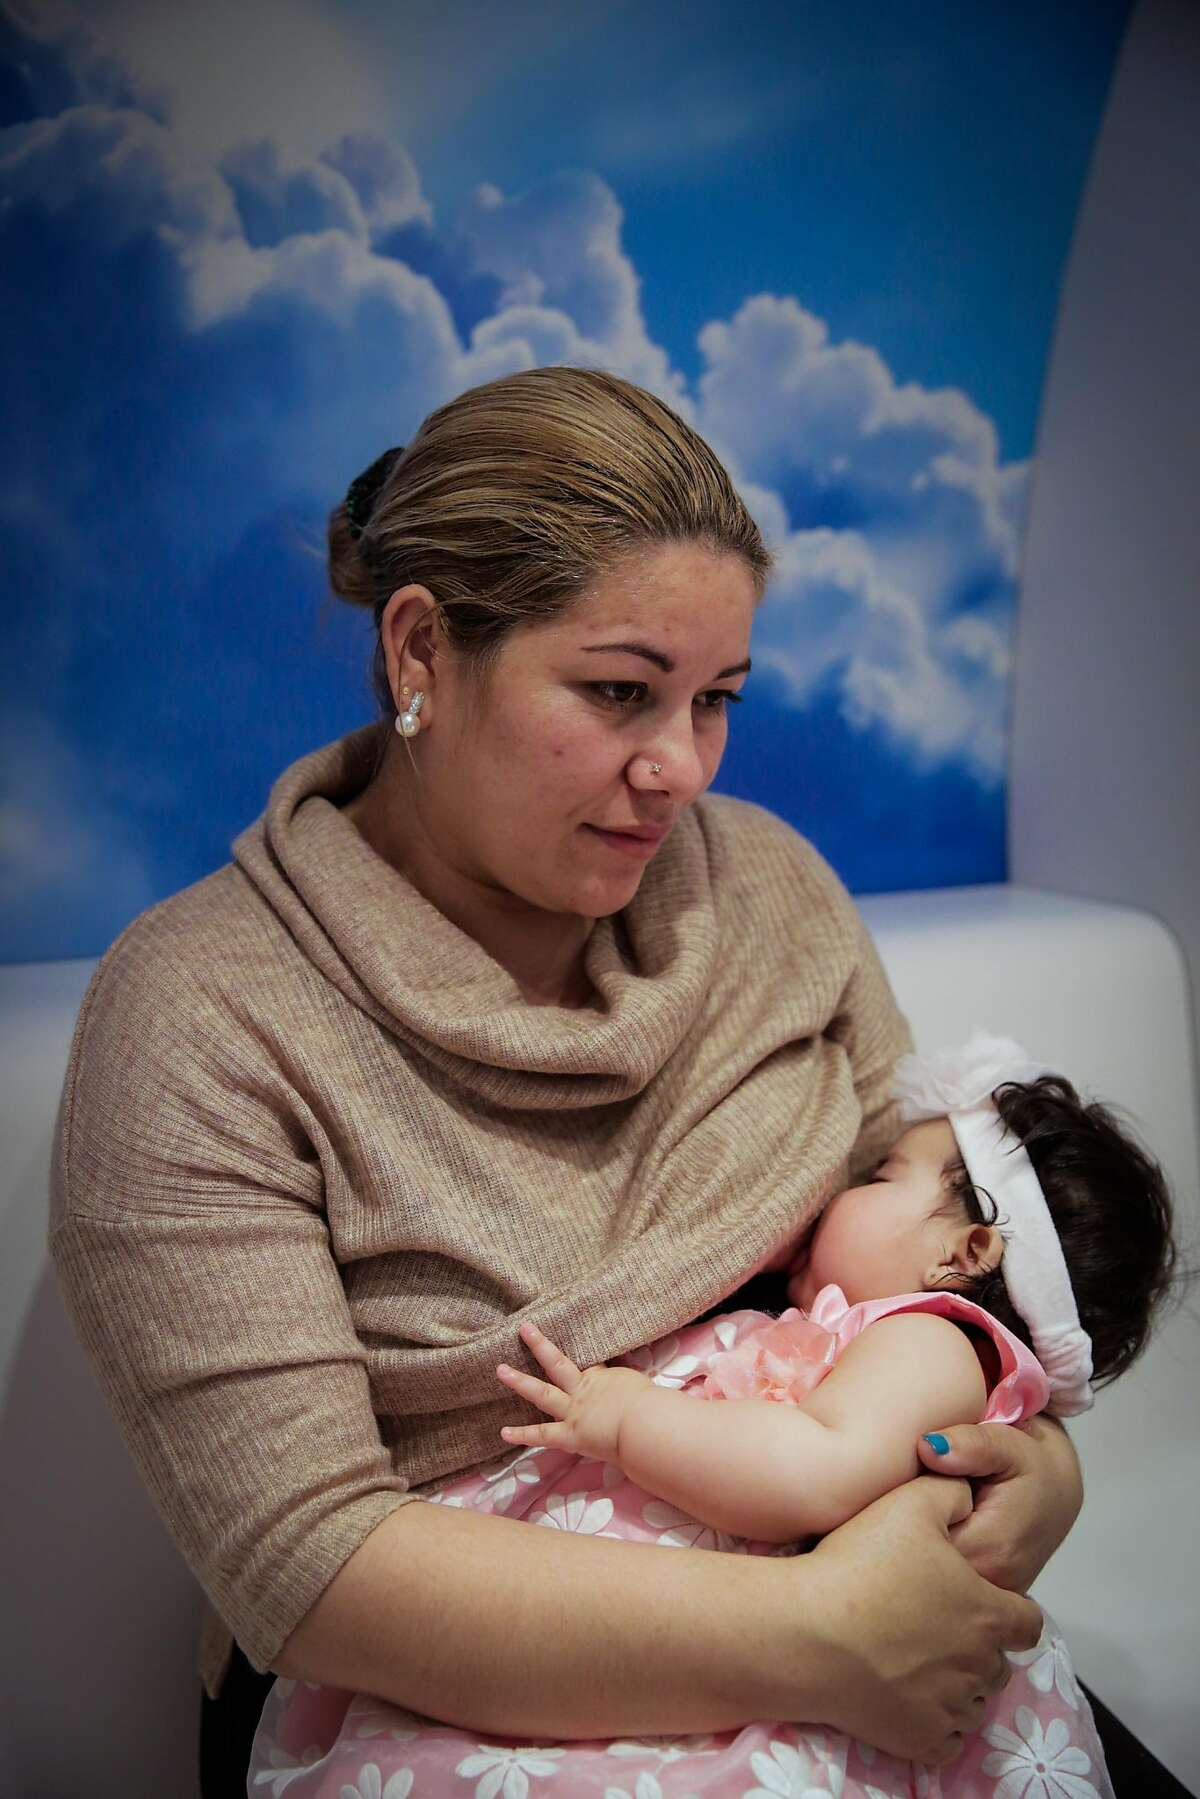 Mavet Coronel breastfeeds her daughter Allison Coronel, 6 months in the lactation pod at City Hall in San Francisco, California, on Monday, March 6, 2017.